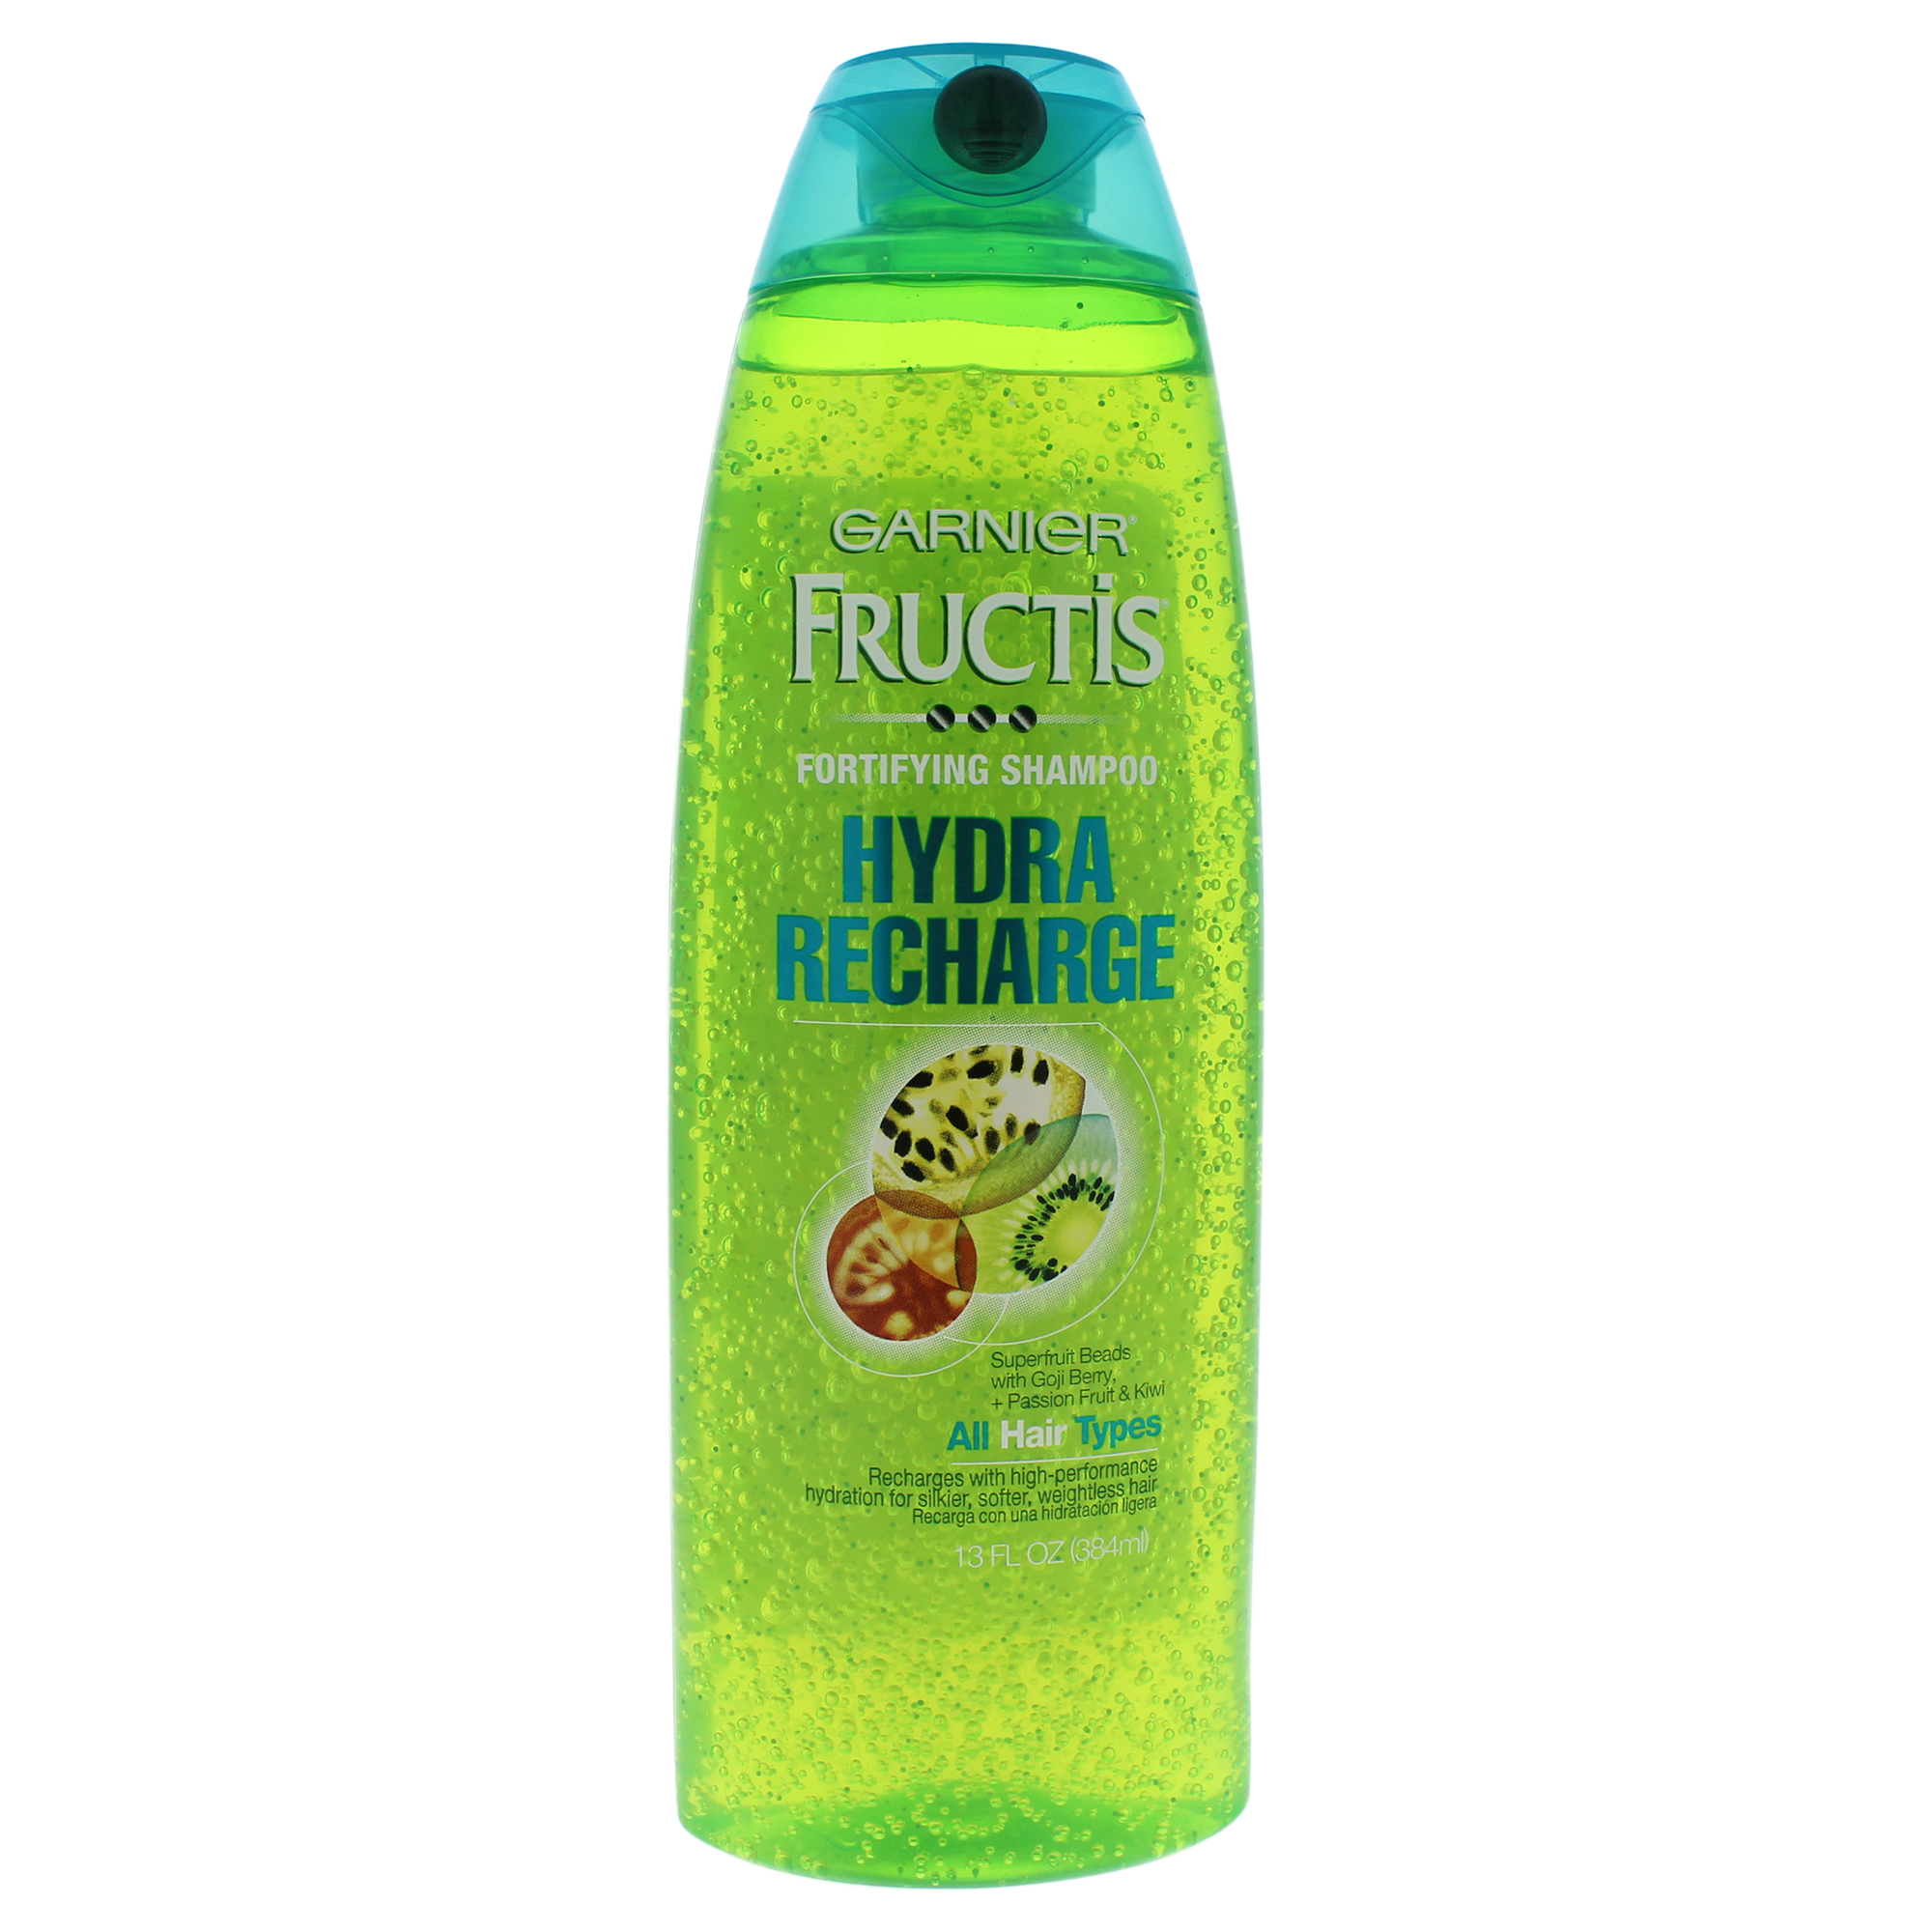 Garnier Fructis Hydra Recharge Shampoo for Normal to Dry Hair, 13 Fl Oz